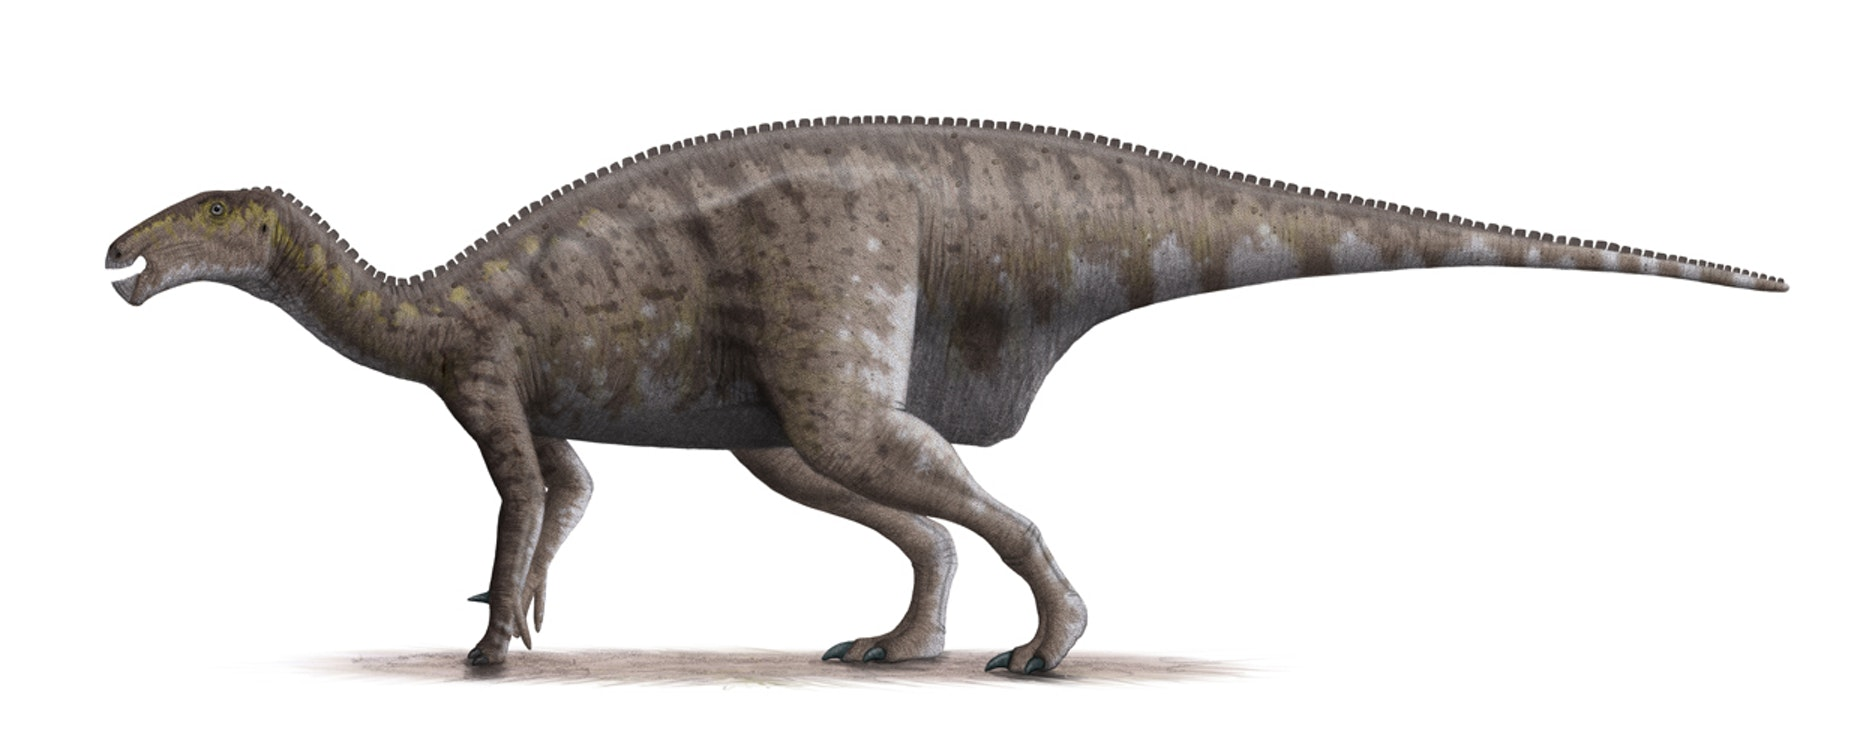 Based proportionally on a skeletal drawing by Gregory Paul (2008). • This was for a long time classified Iguanodon atherfieldensis.